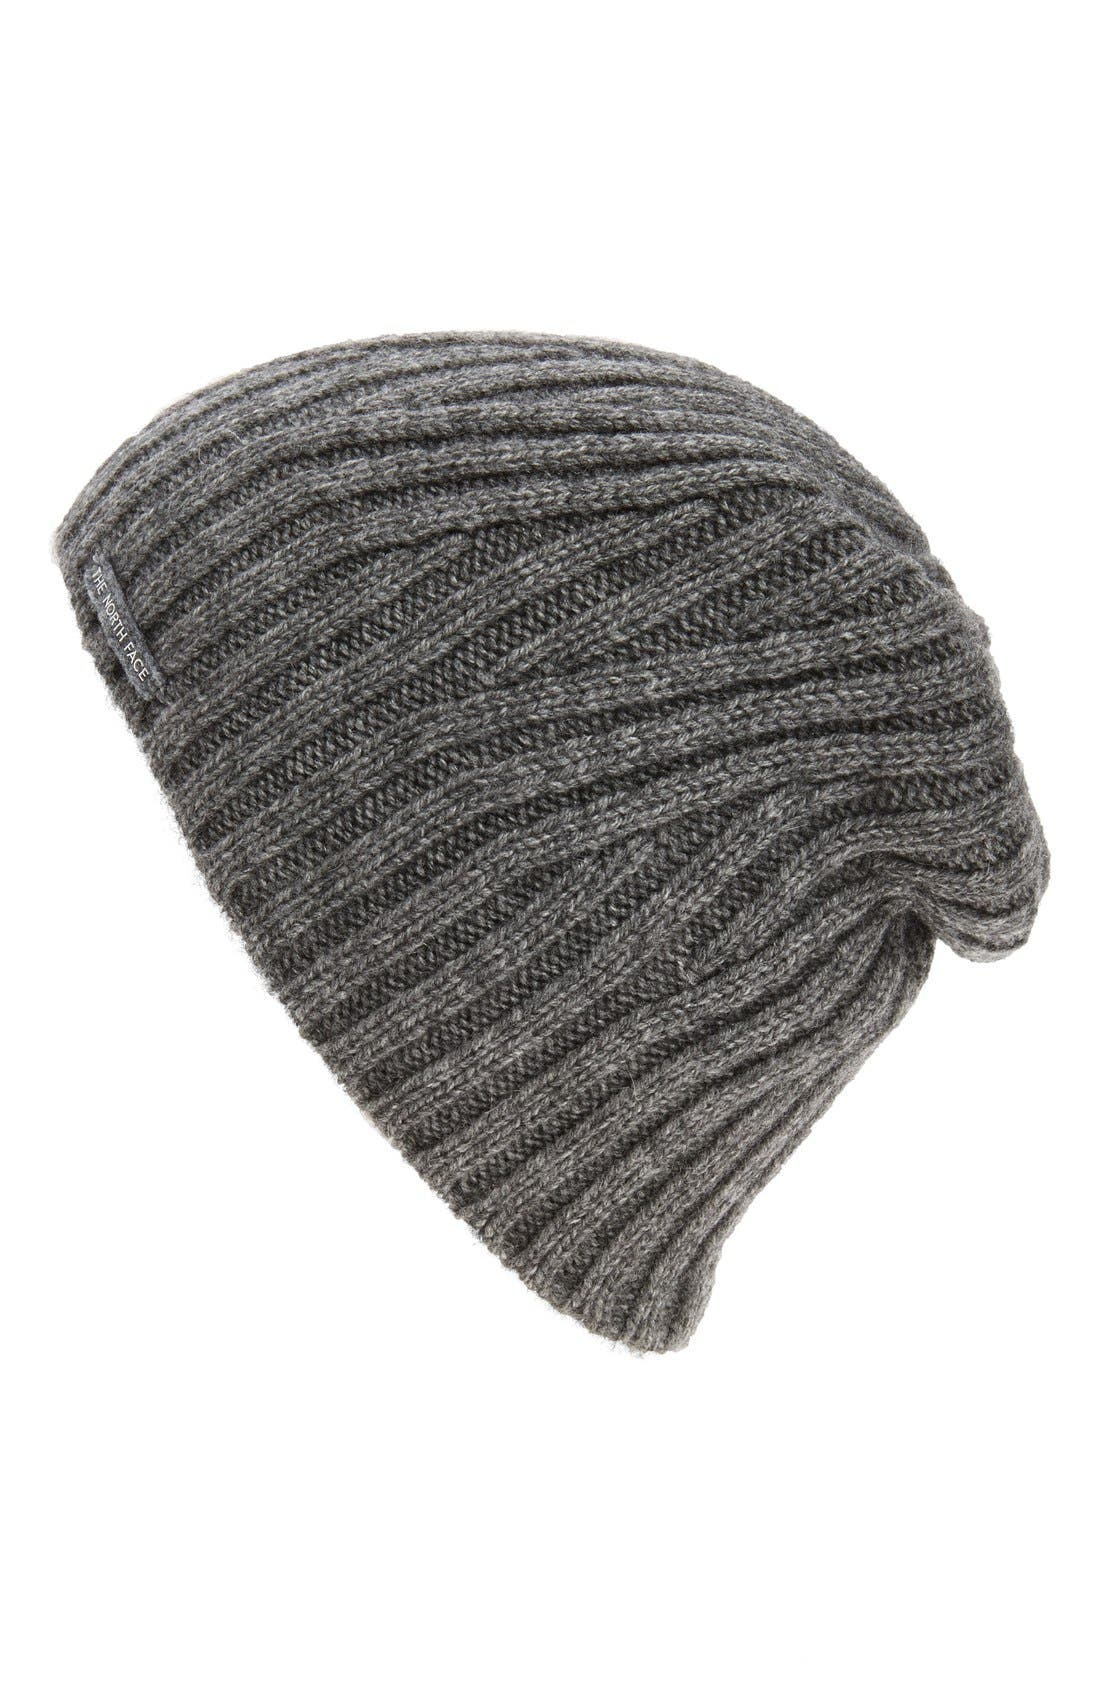 Main Image - The North Face Classic Wool Blend Beanie